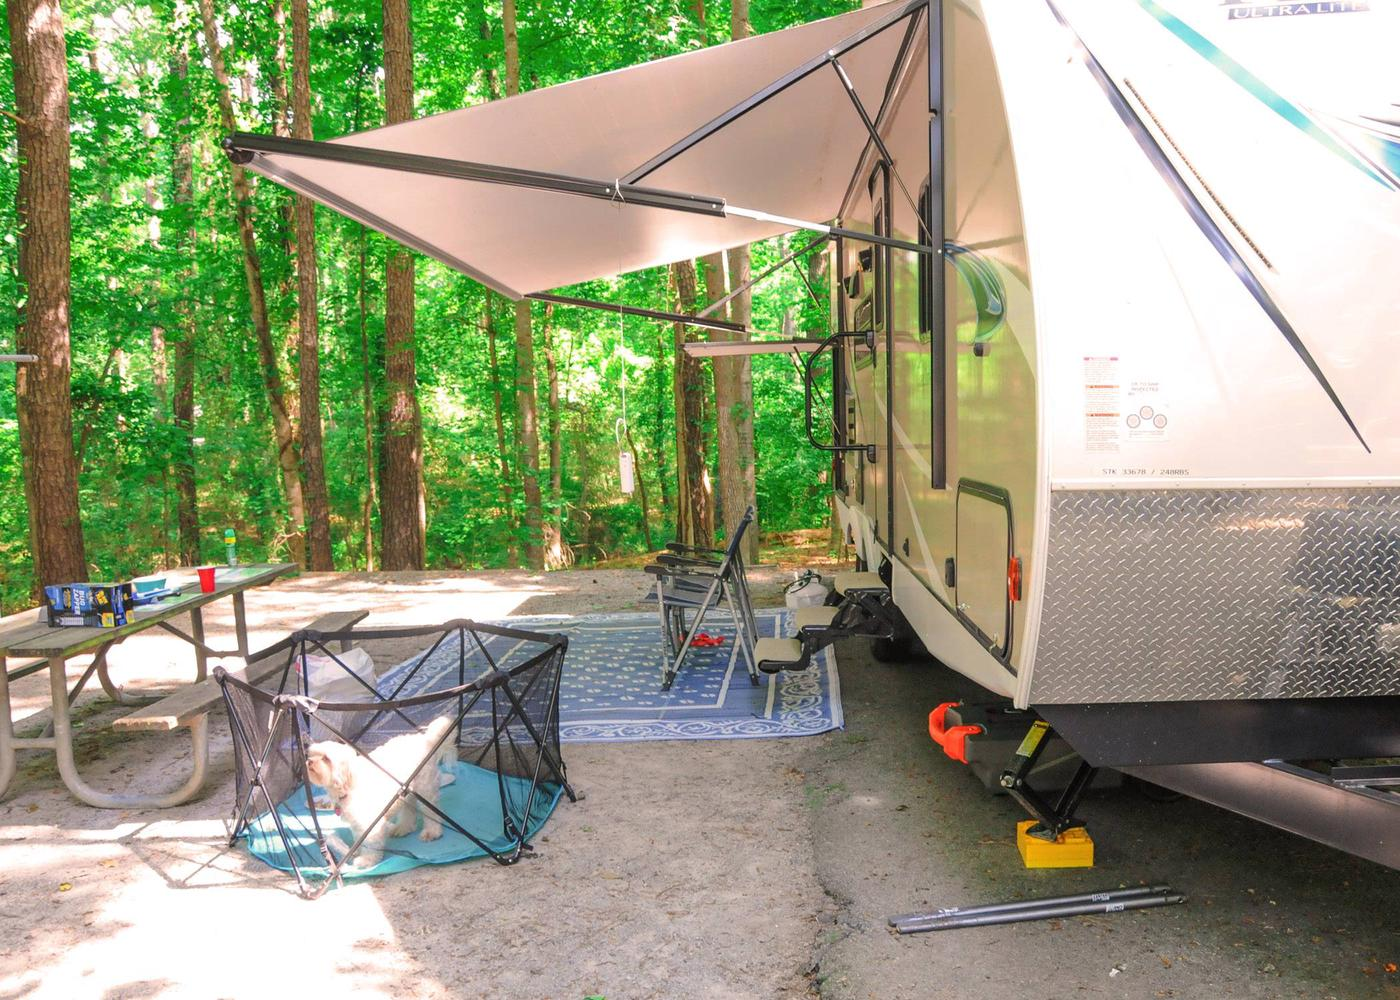 Awning-side clearance.Victoria Campground, campsite 46.